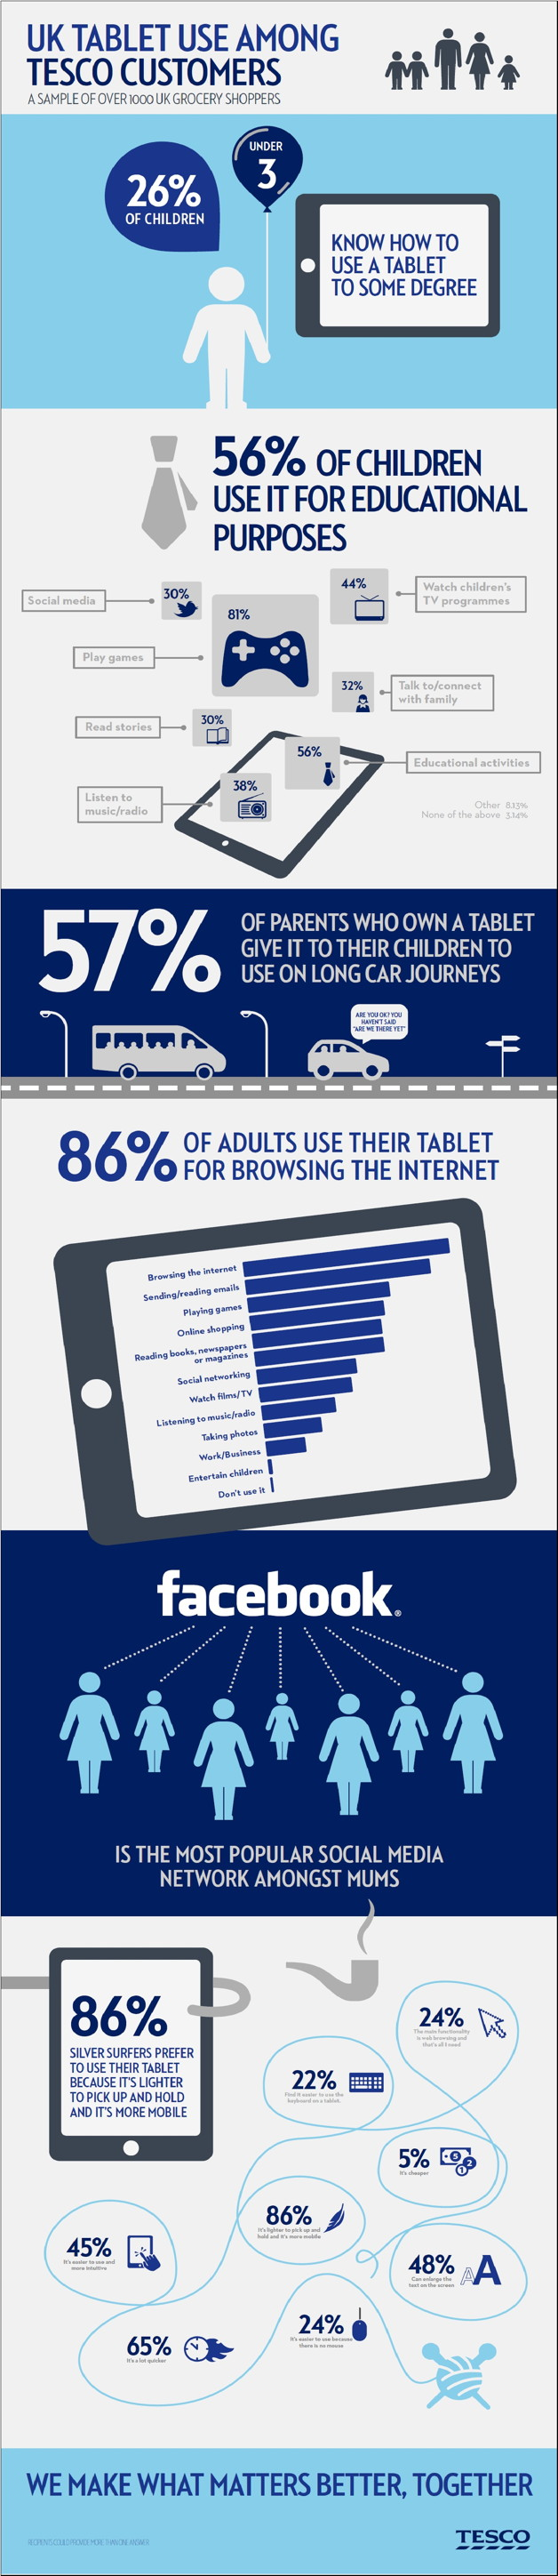 Tesco Infographic on Tablet Users